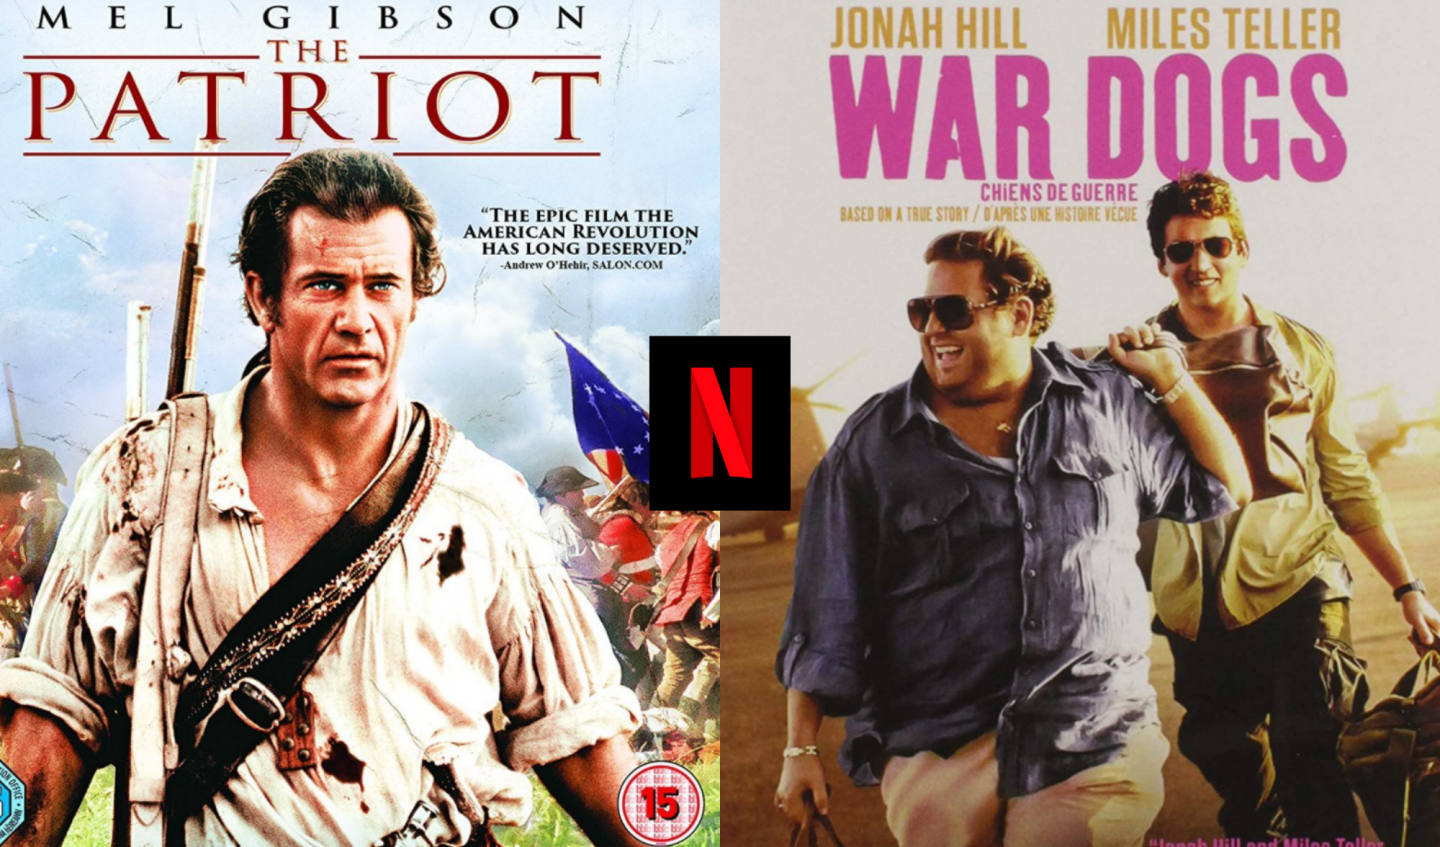 Movie posters for The Patriot and War Dogs with the Netflix logo